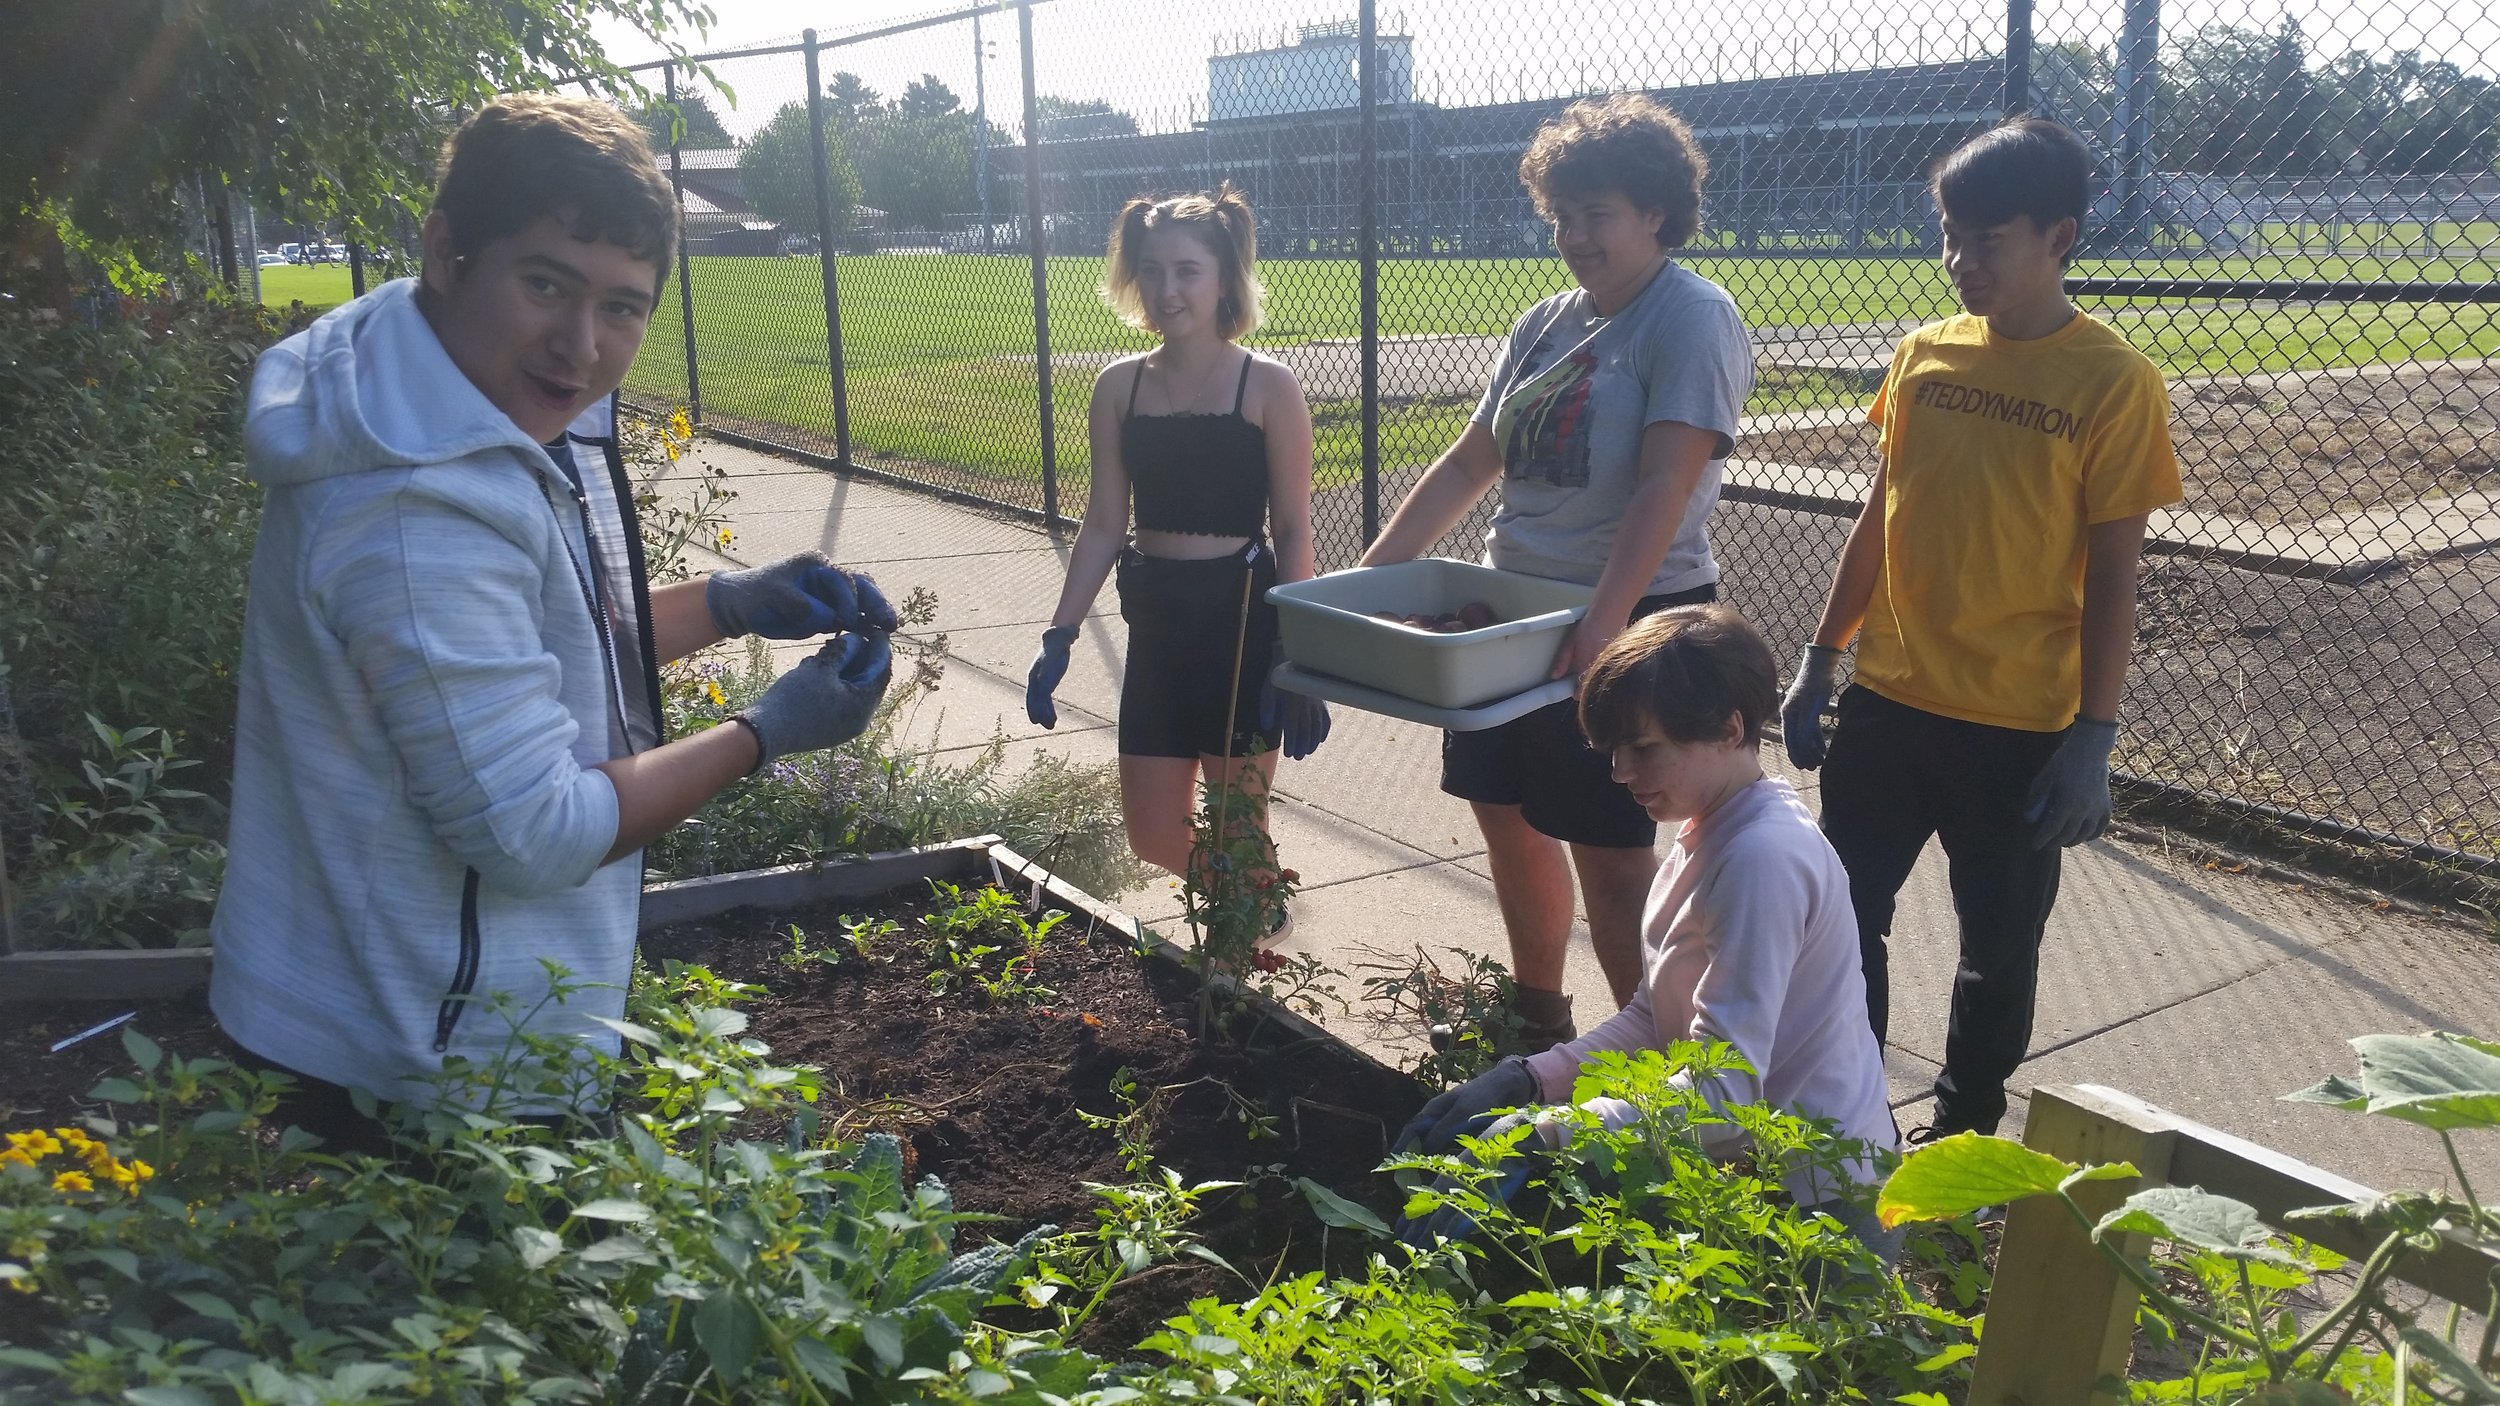 Roosevelt youth harvesting produce from their raised beds.